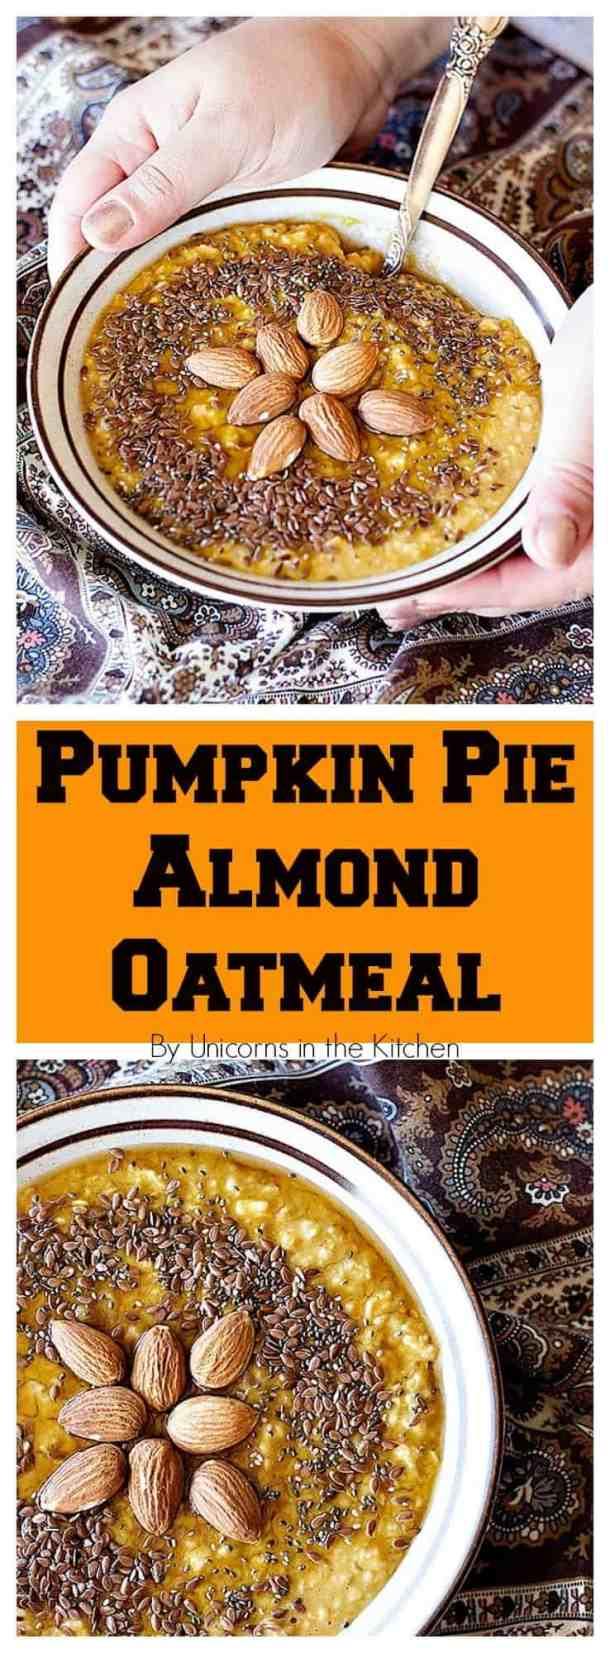 Celebrate fall with this Pumpkin Spice Oatmeal that is easy and healthy. You can make it on the stove or in the microwave! From UnicornsintheKitchen.com